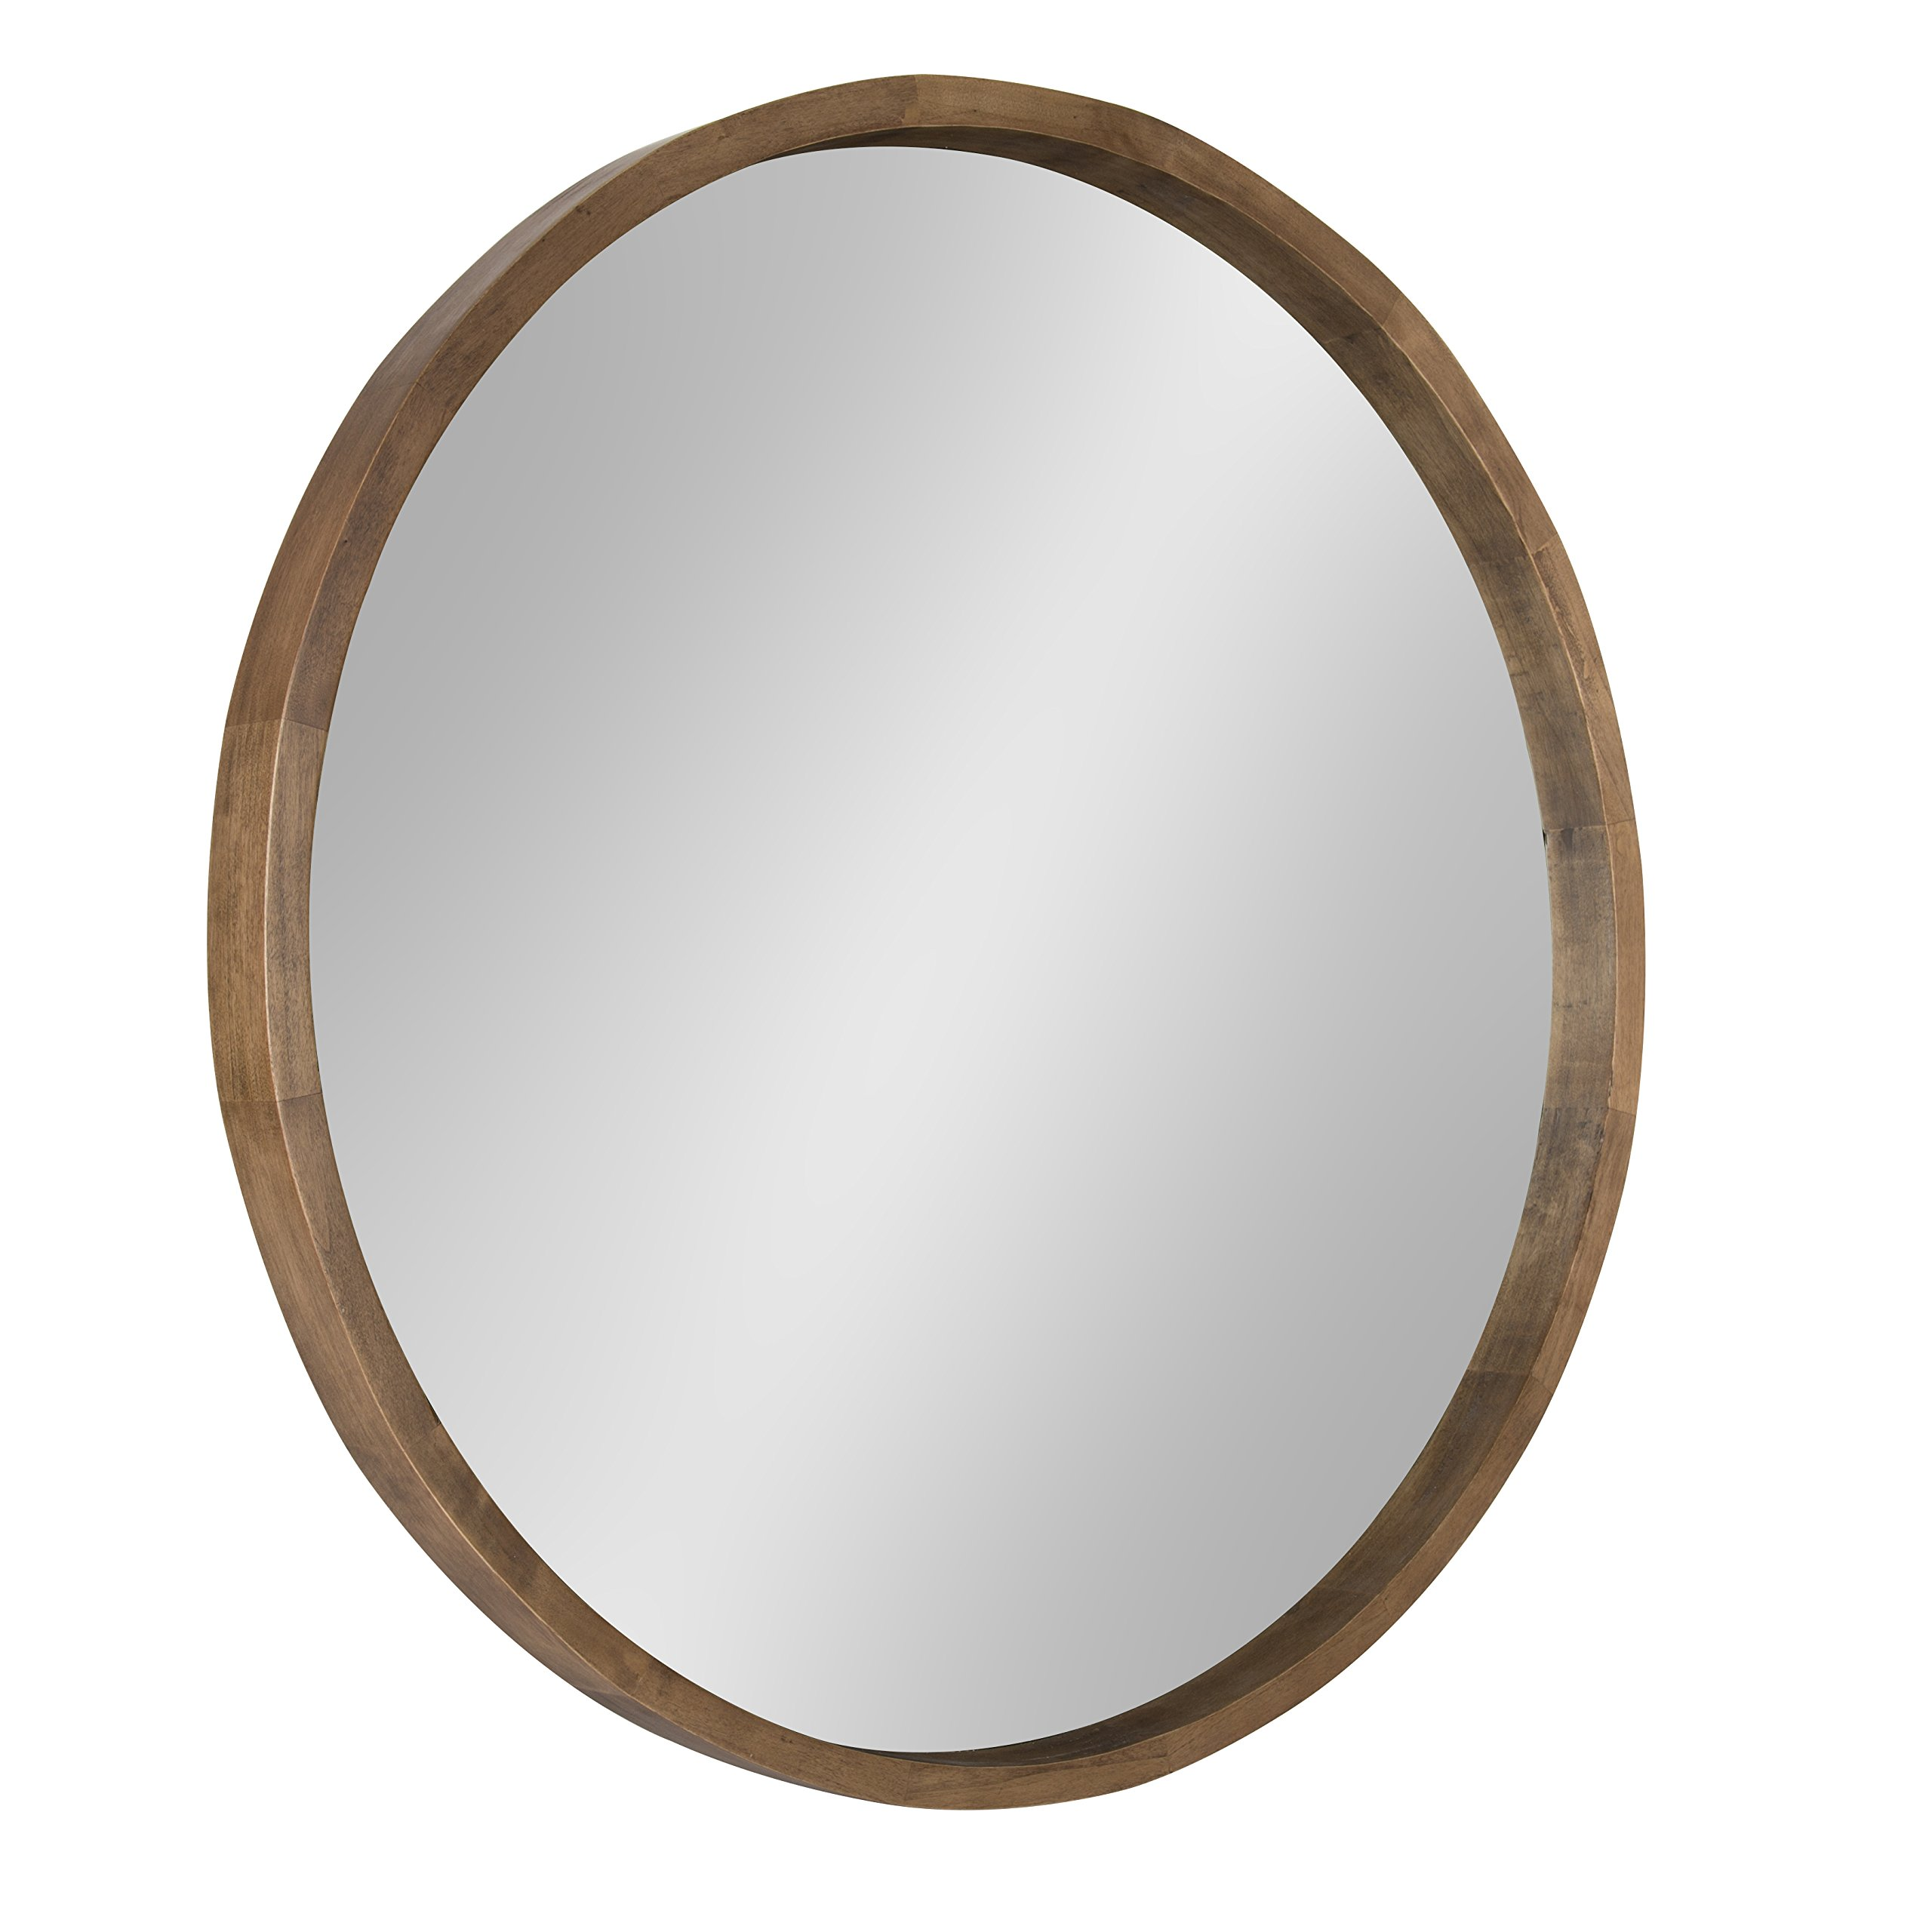 Kate and Laurel - Hutton Round Decorative Wood Frame Wall Mirror, 30 Inch Diameter, Natural Rustic Brown